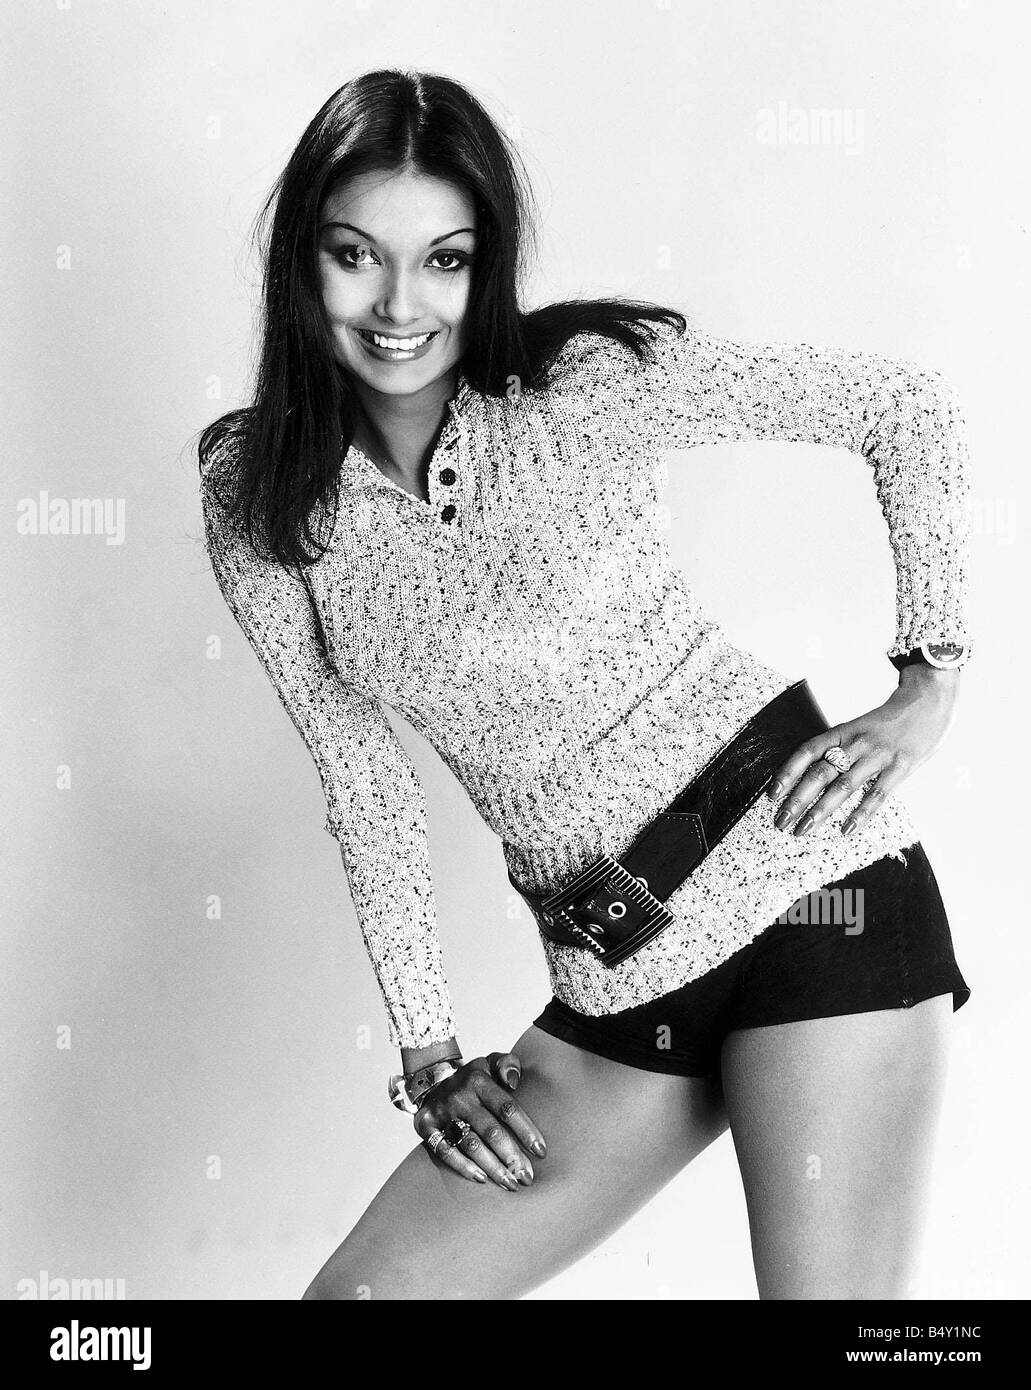 shakira caine model wife of michael caine stock photo